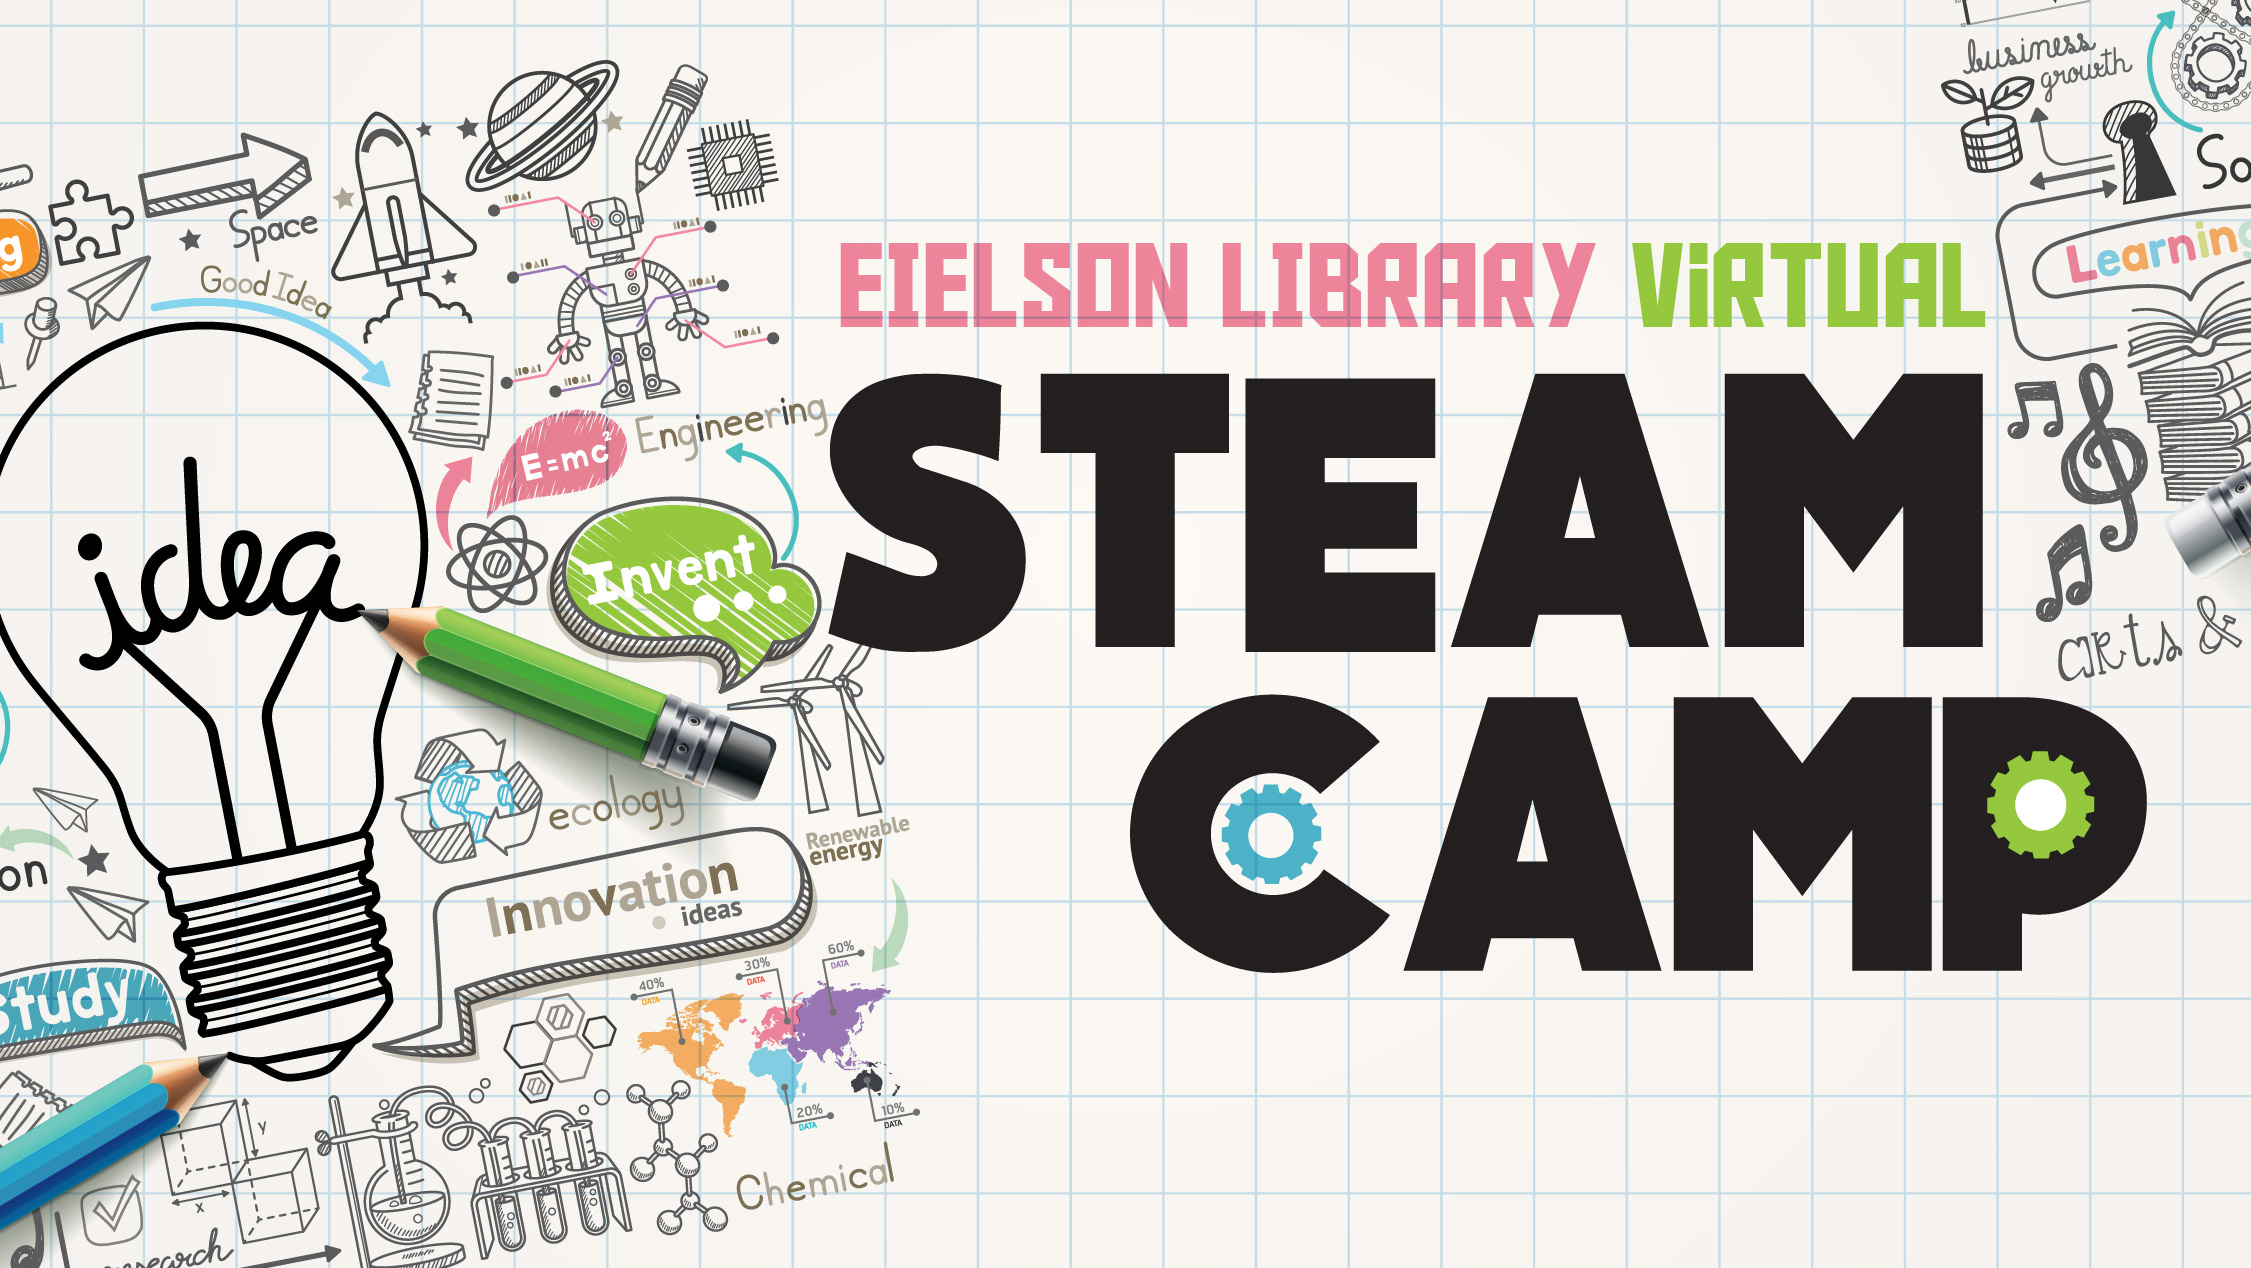 STEAM LIBRARY CAMP 01